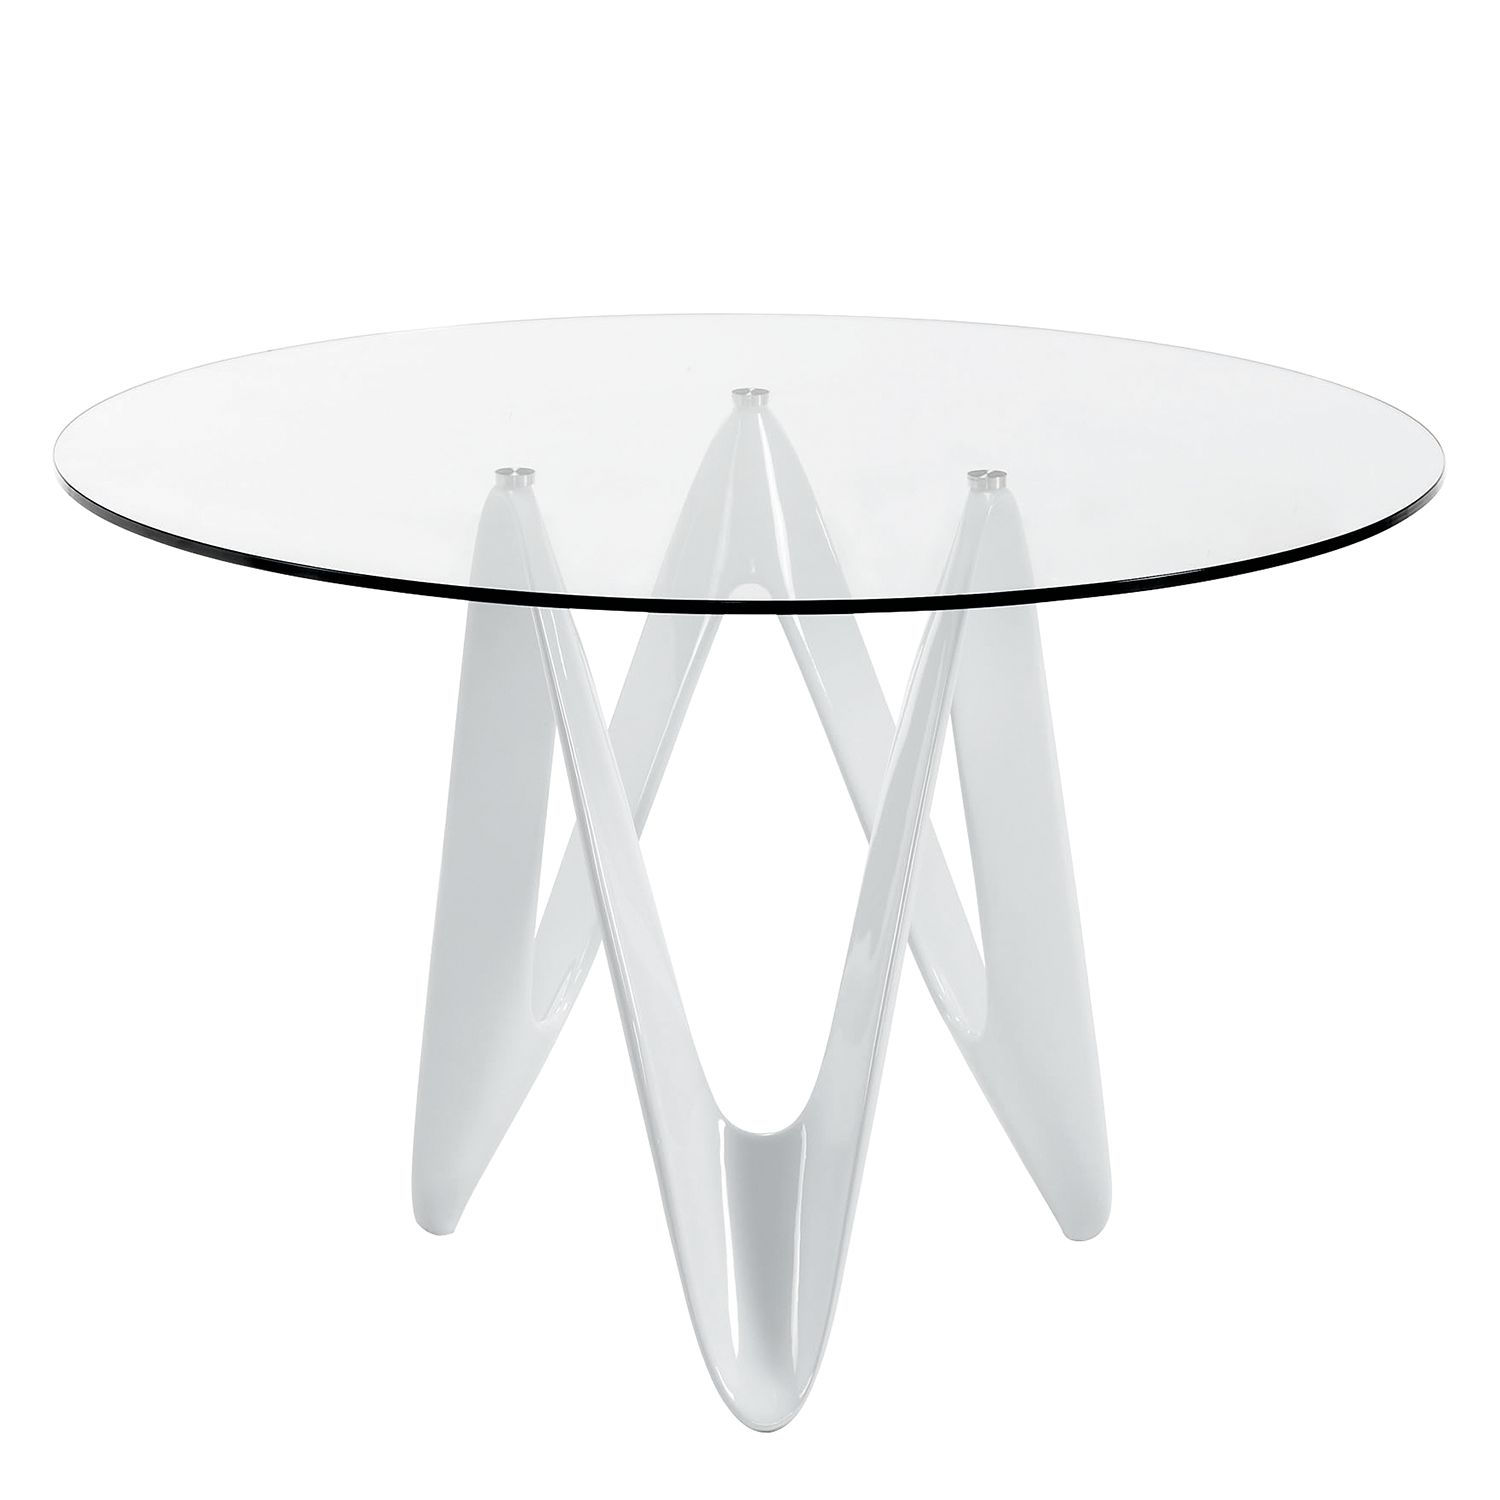 Table d'appoint Calasetta